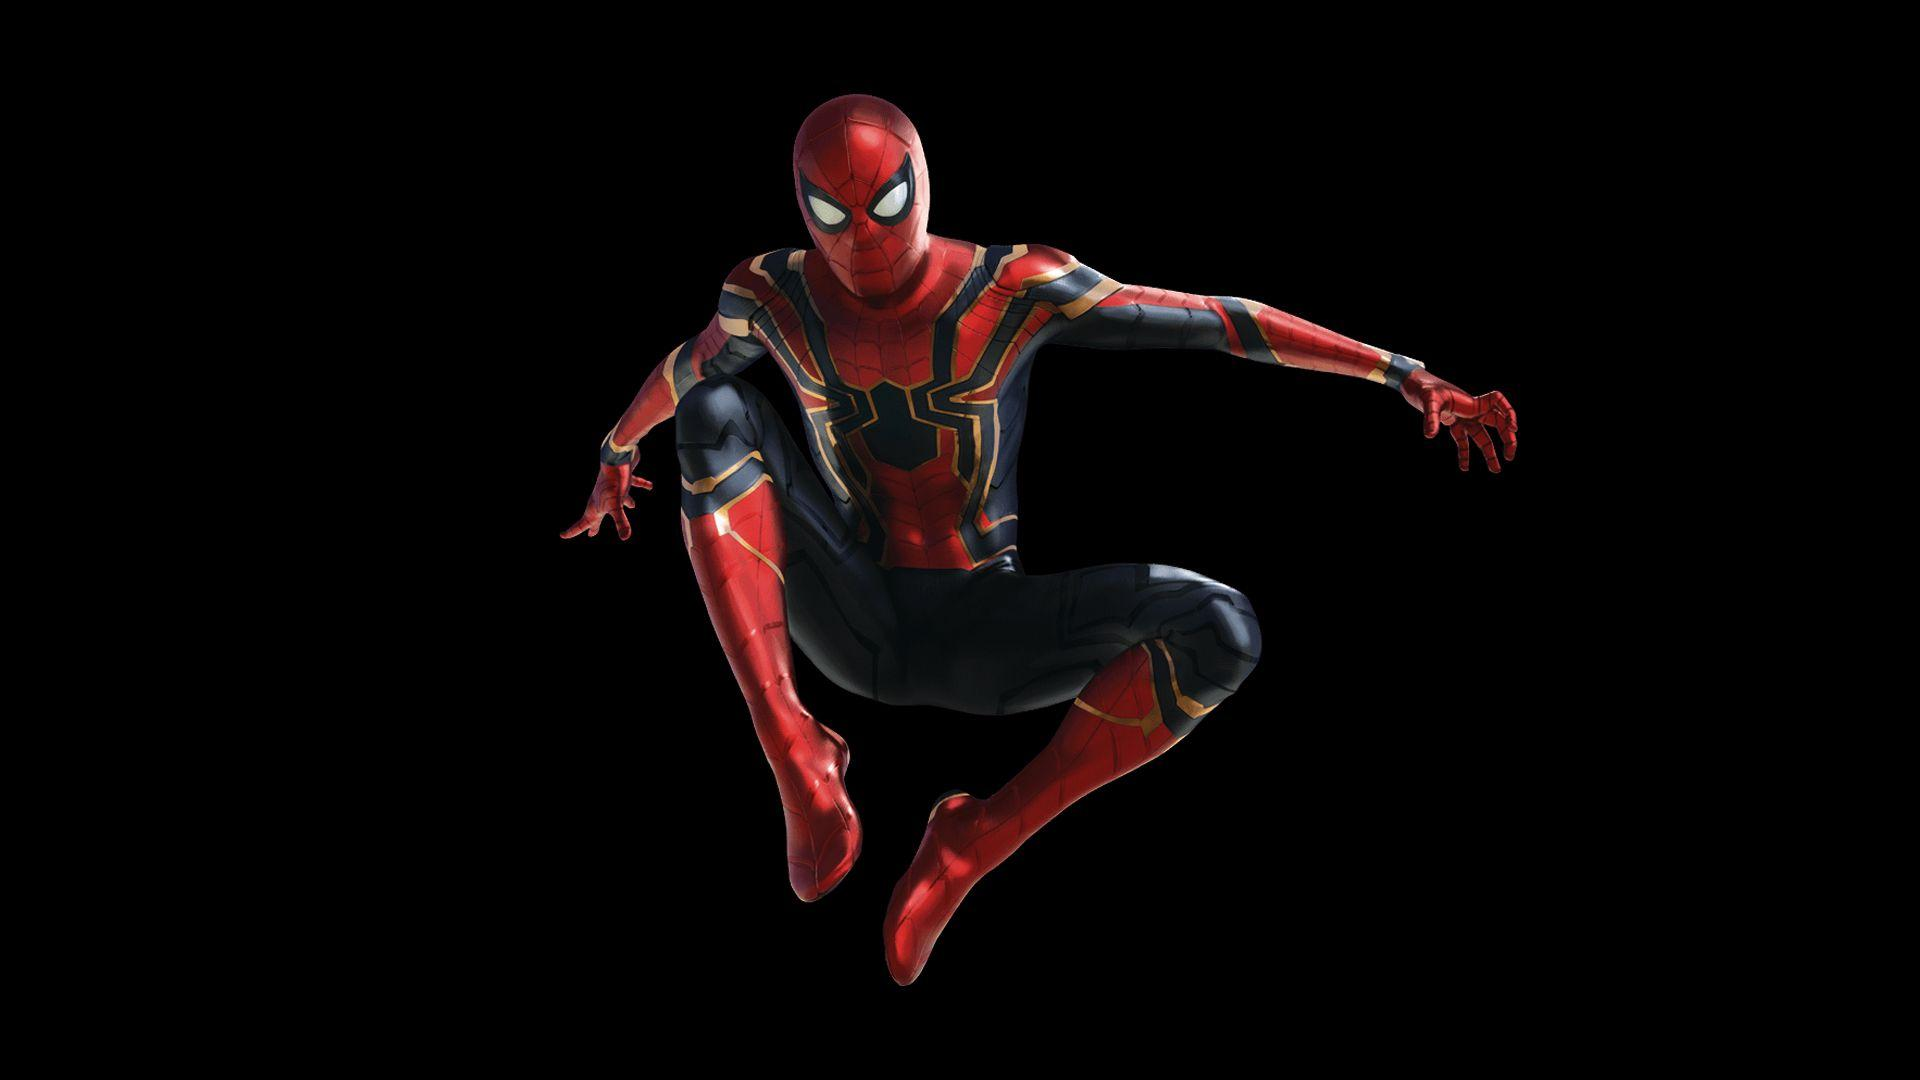 Spider Man Avengers Wallpapers Wallpaper Cave